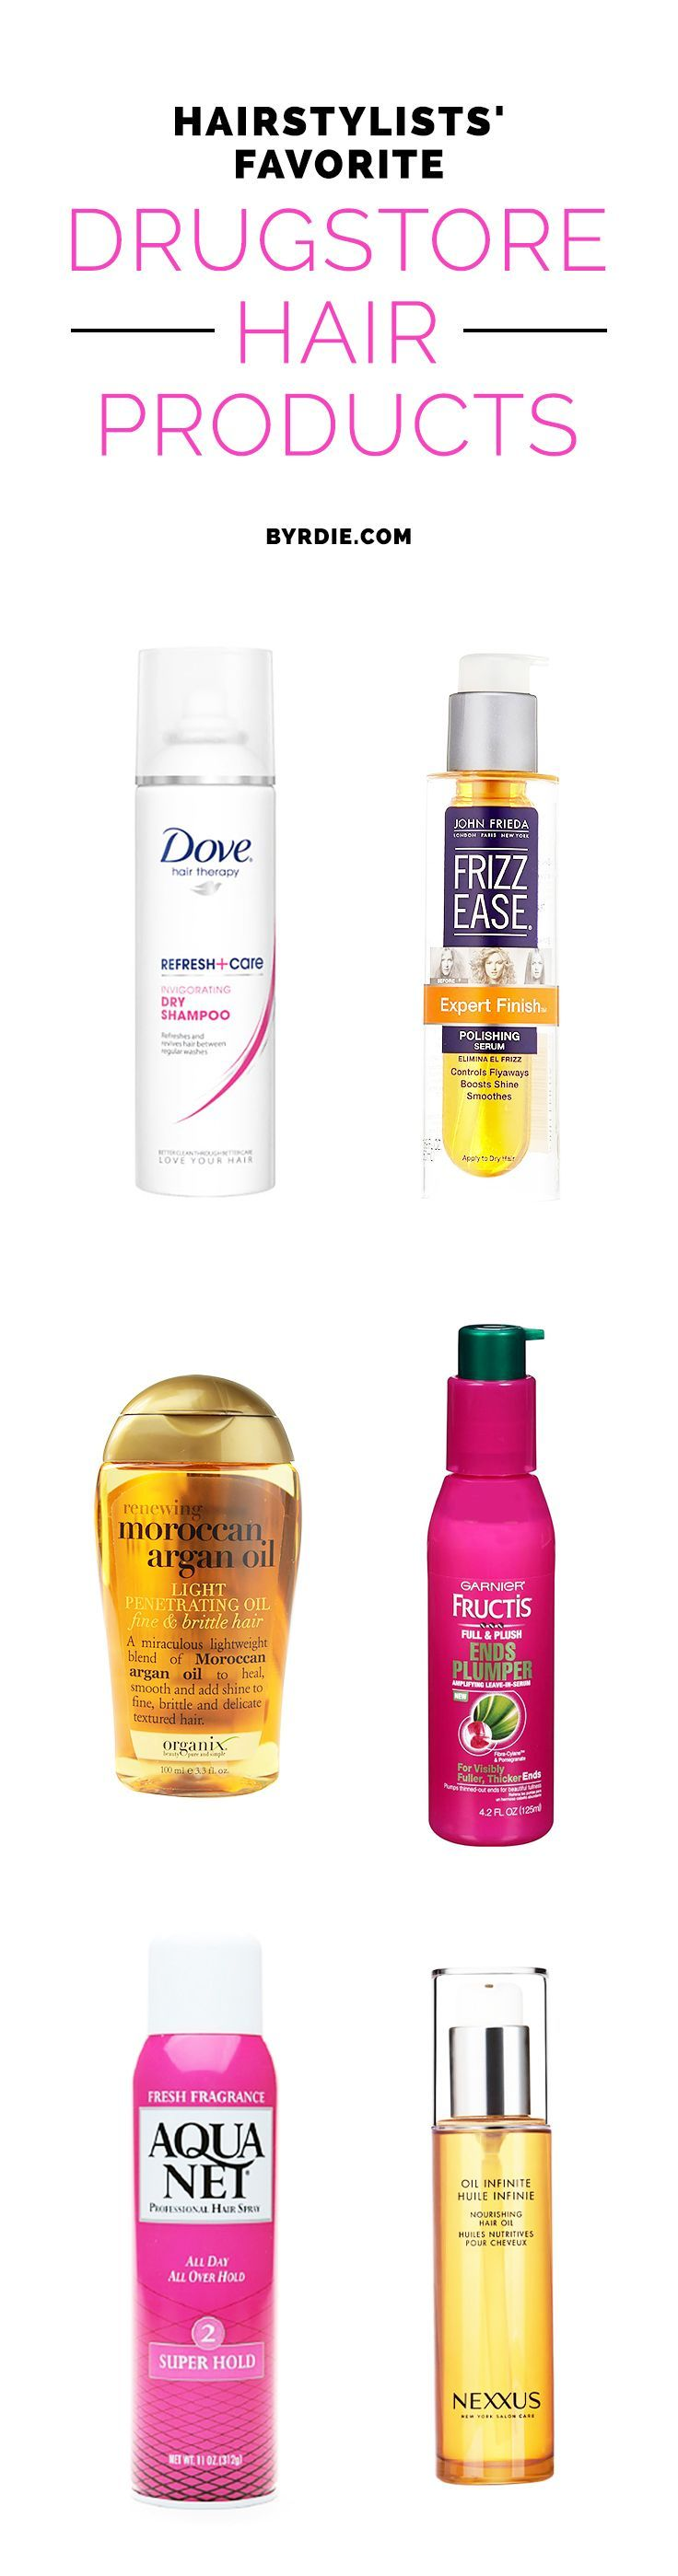 10 Drugstore Hair Products Stylists Live By